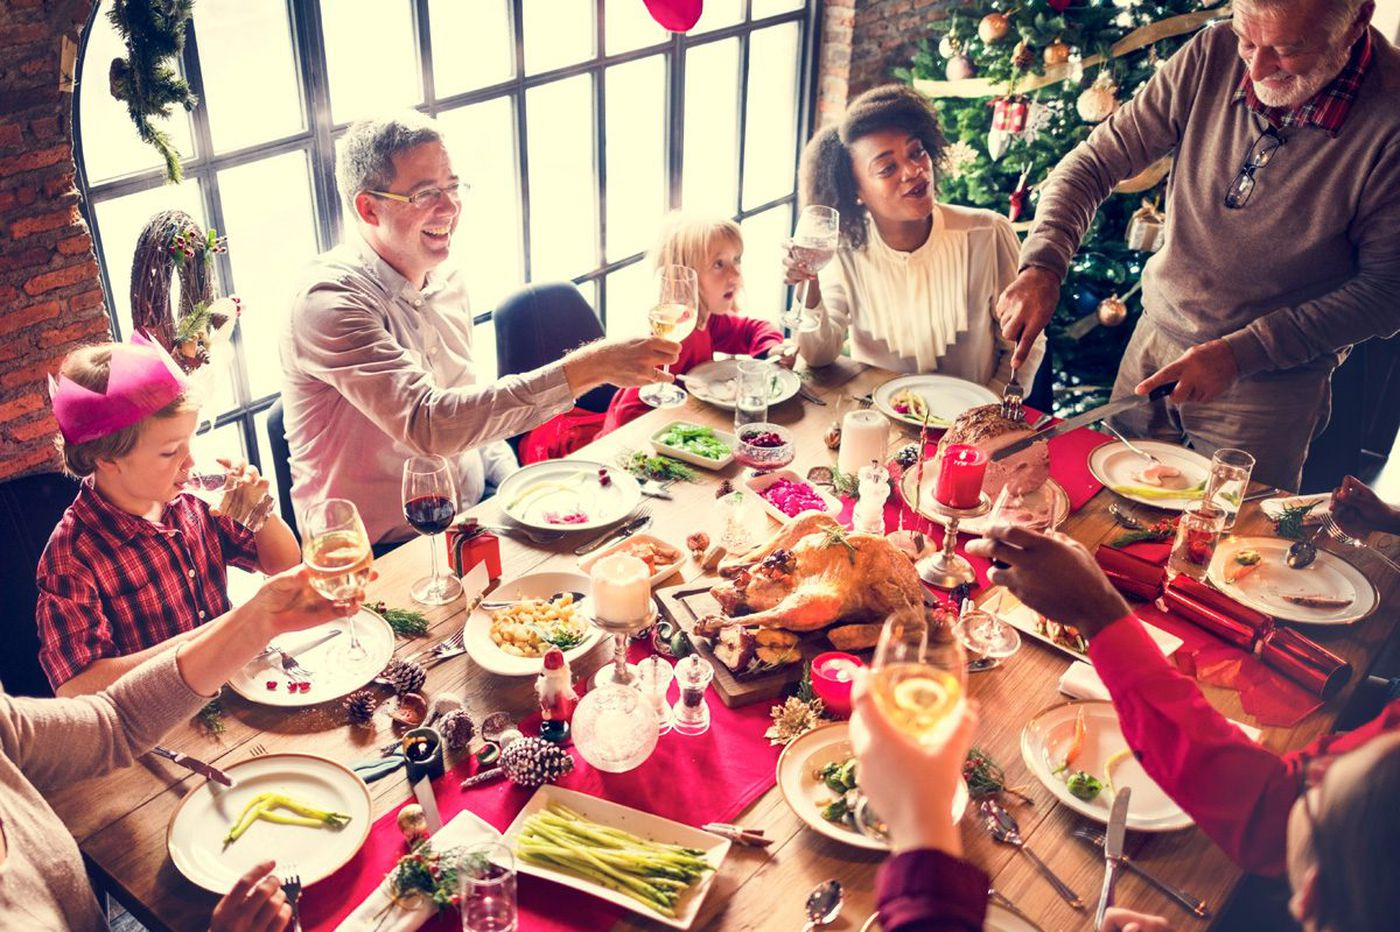 Should parents restrict foods over the holidays?